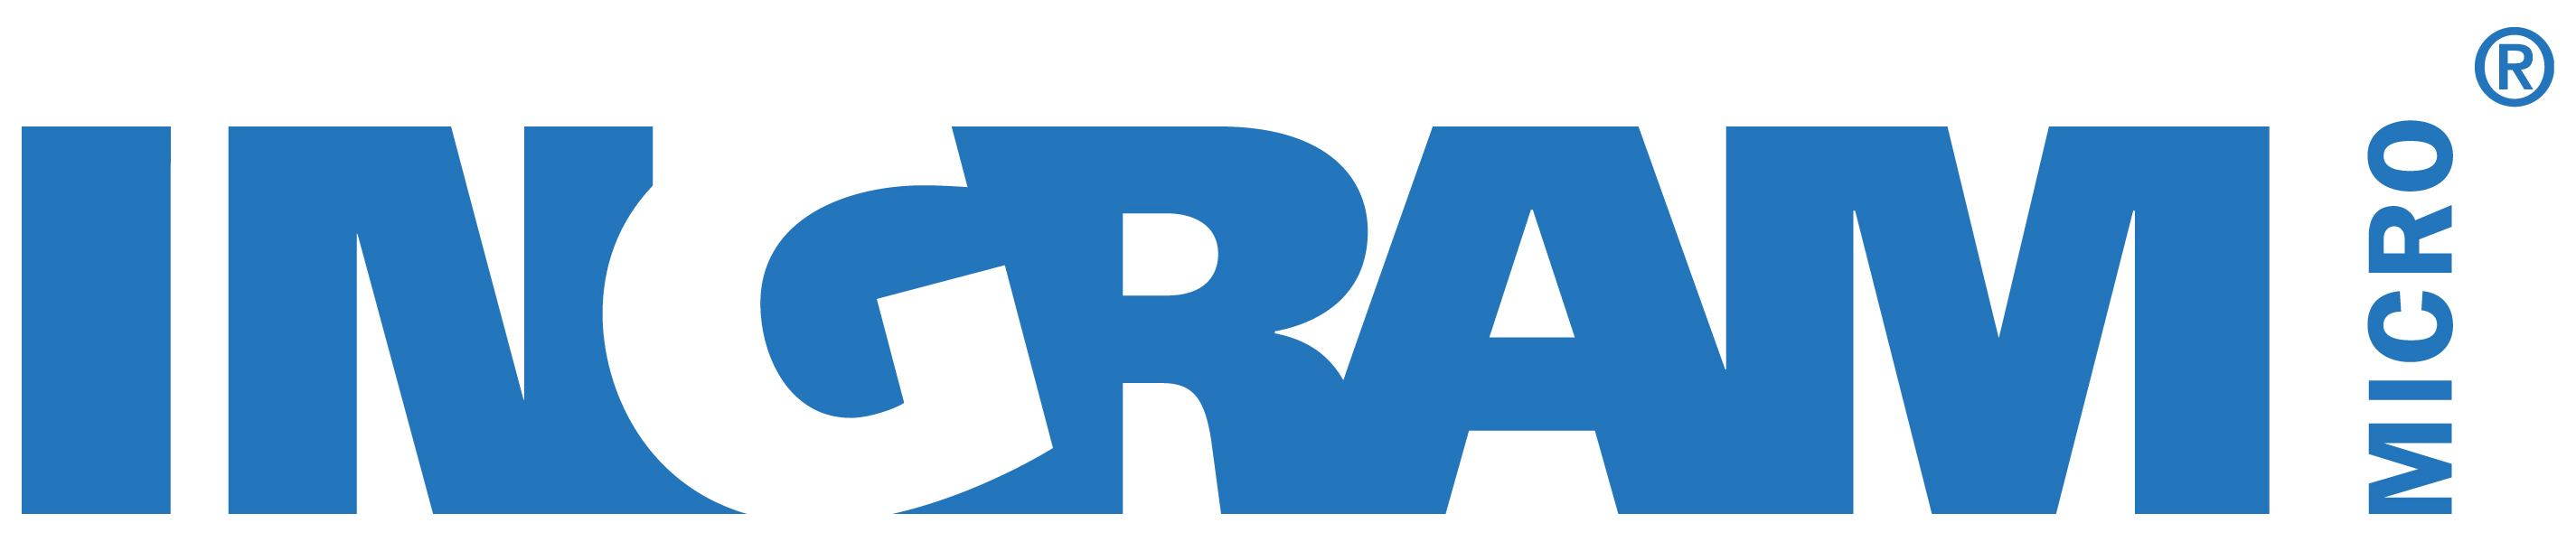 INGRAM_Wordmark®_Blue